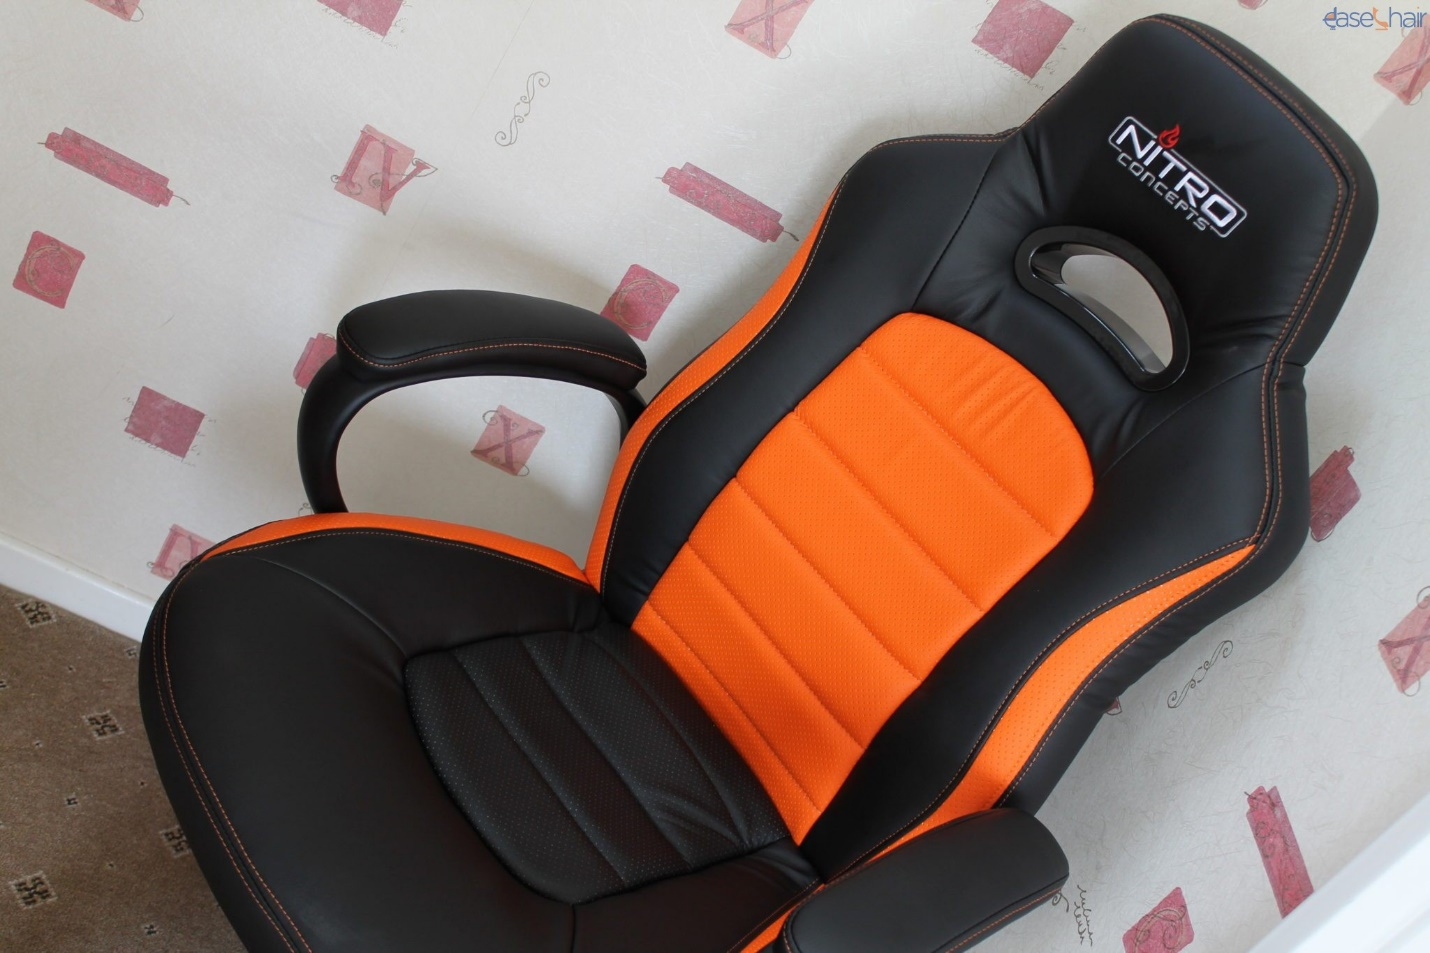 nitro concepts nc c80 comfort series gaming chair with